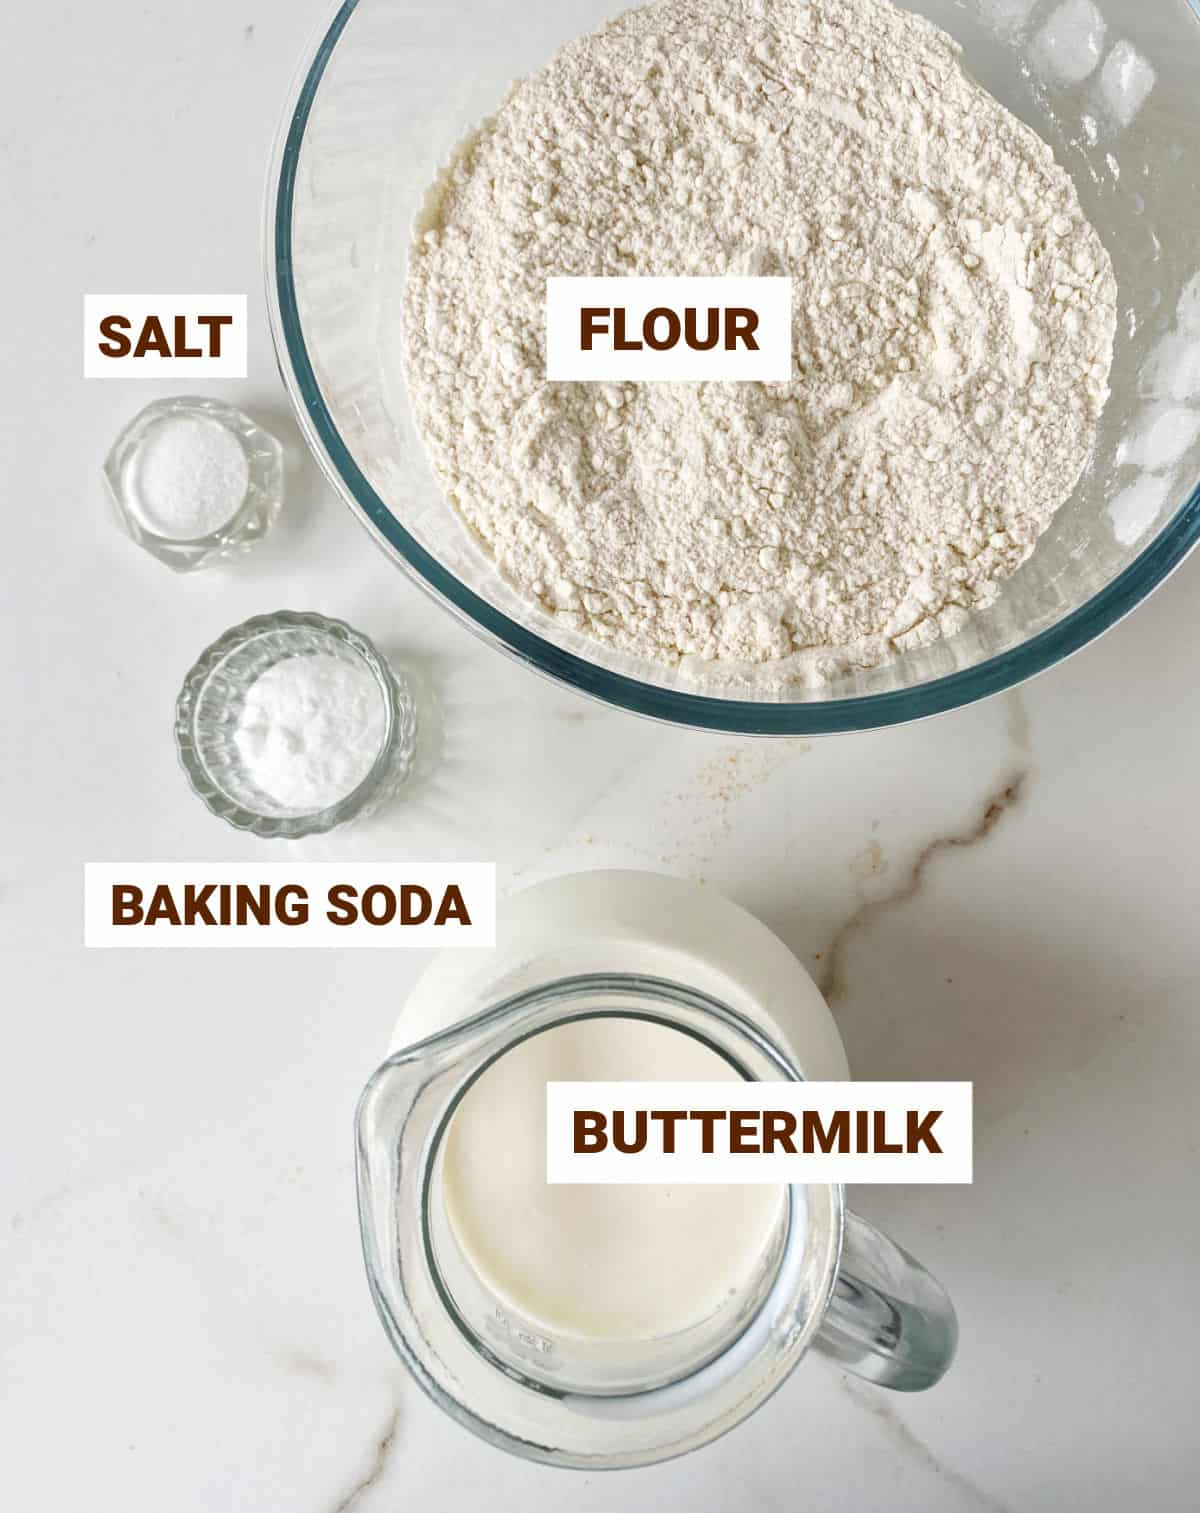 White marble surface with bowls containing ingredients for soda bread: buttermilk, flour, salt, baking soda